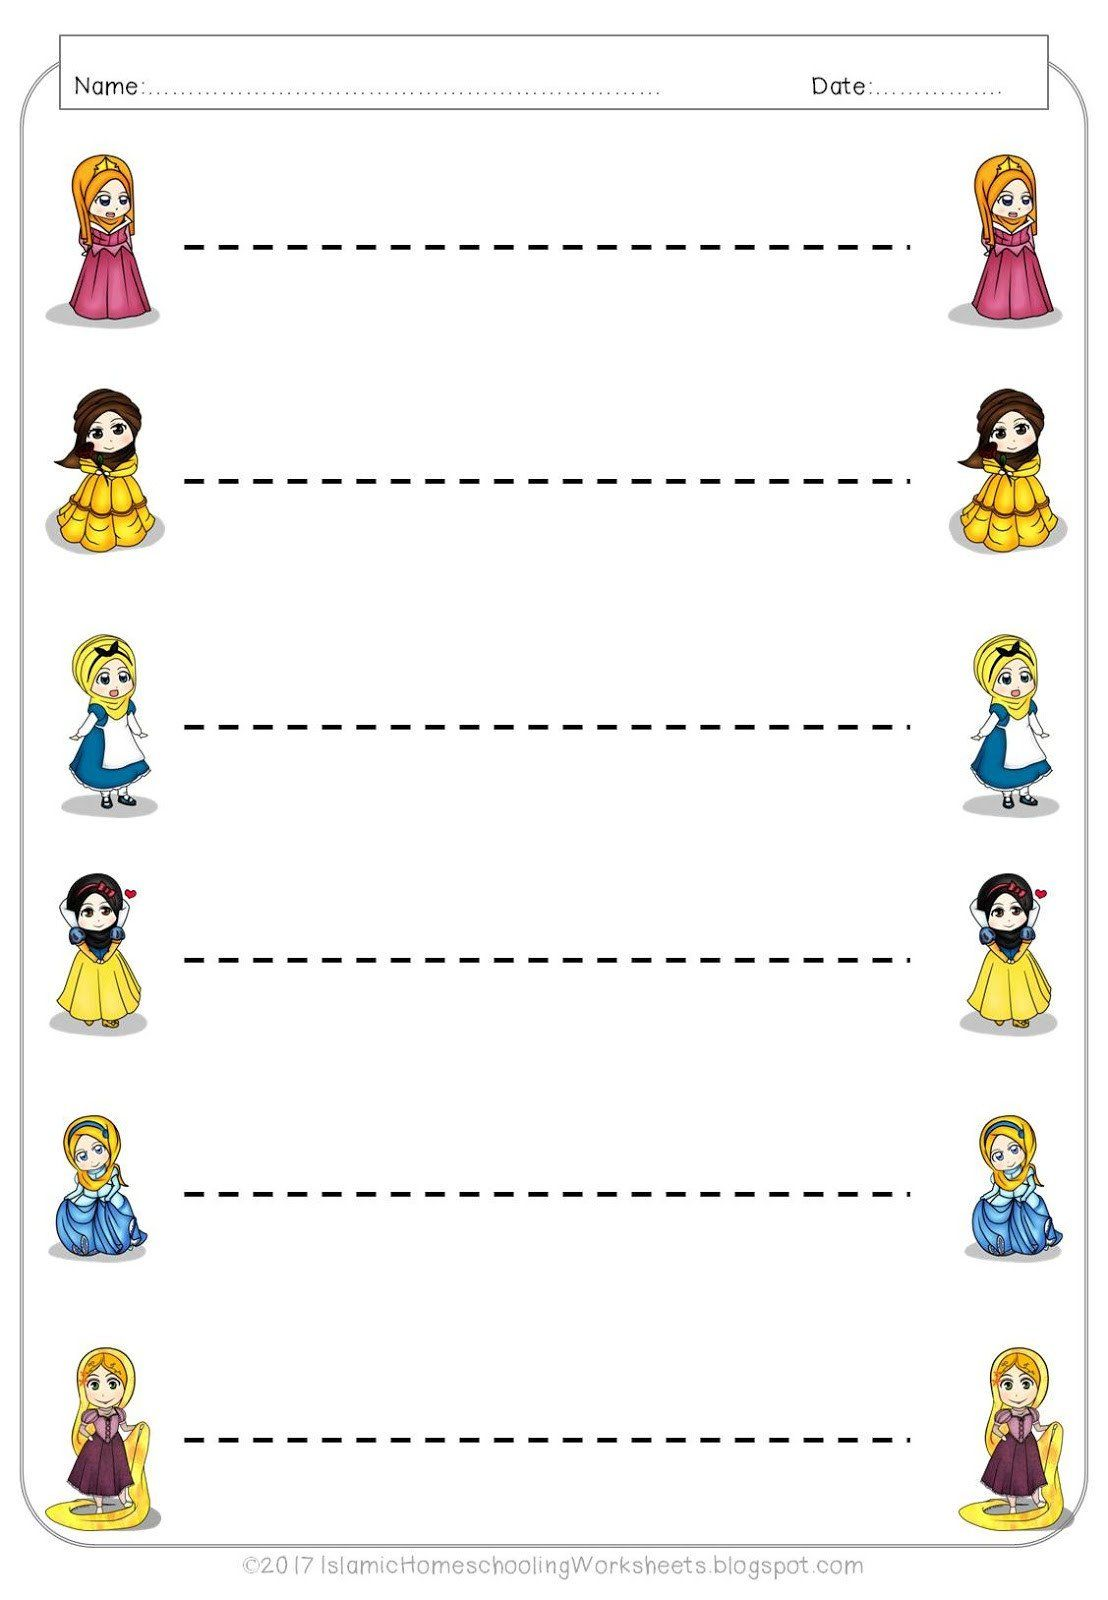 Princess Worksheets For Preschool Princess Preschool